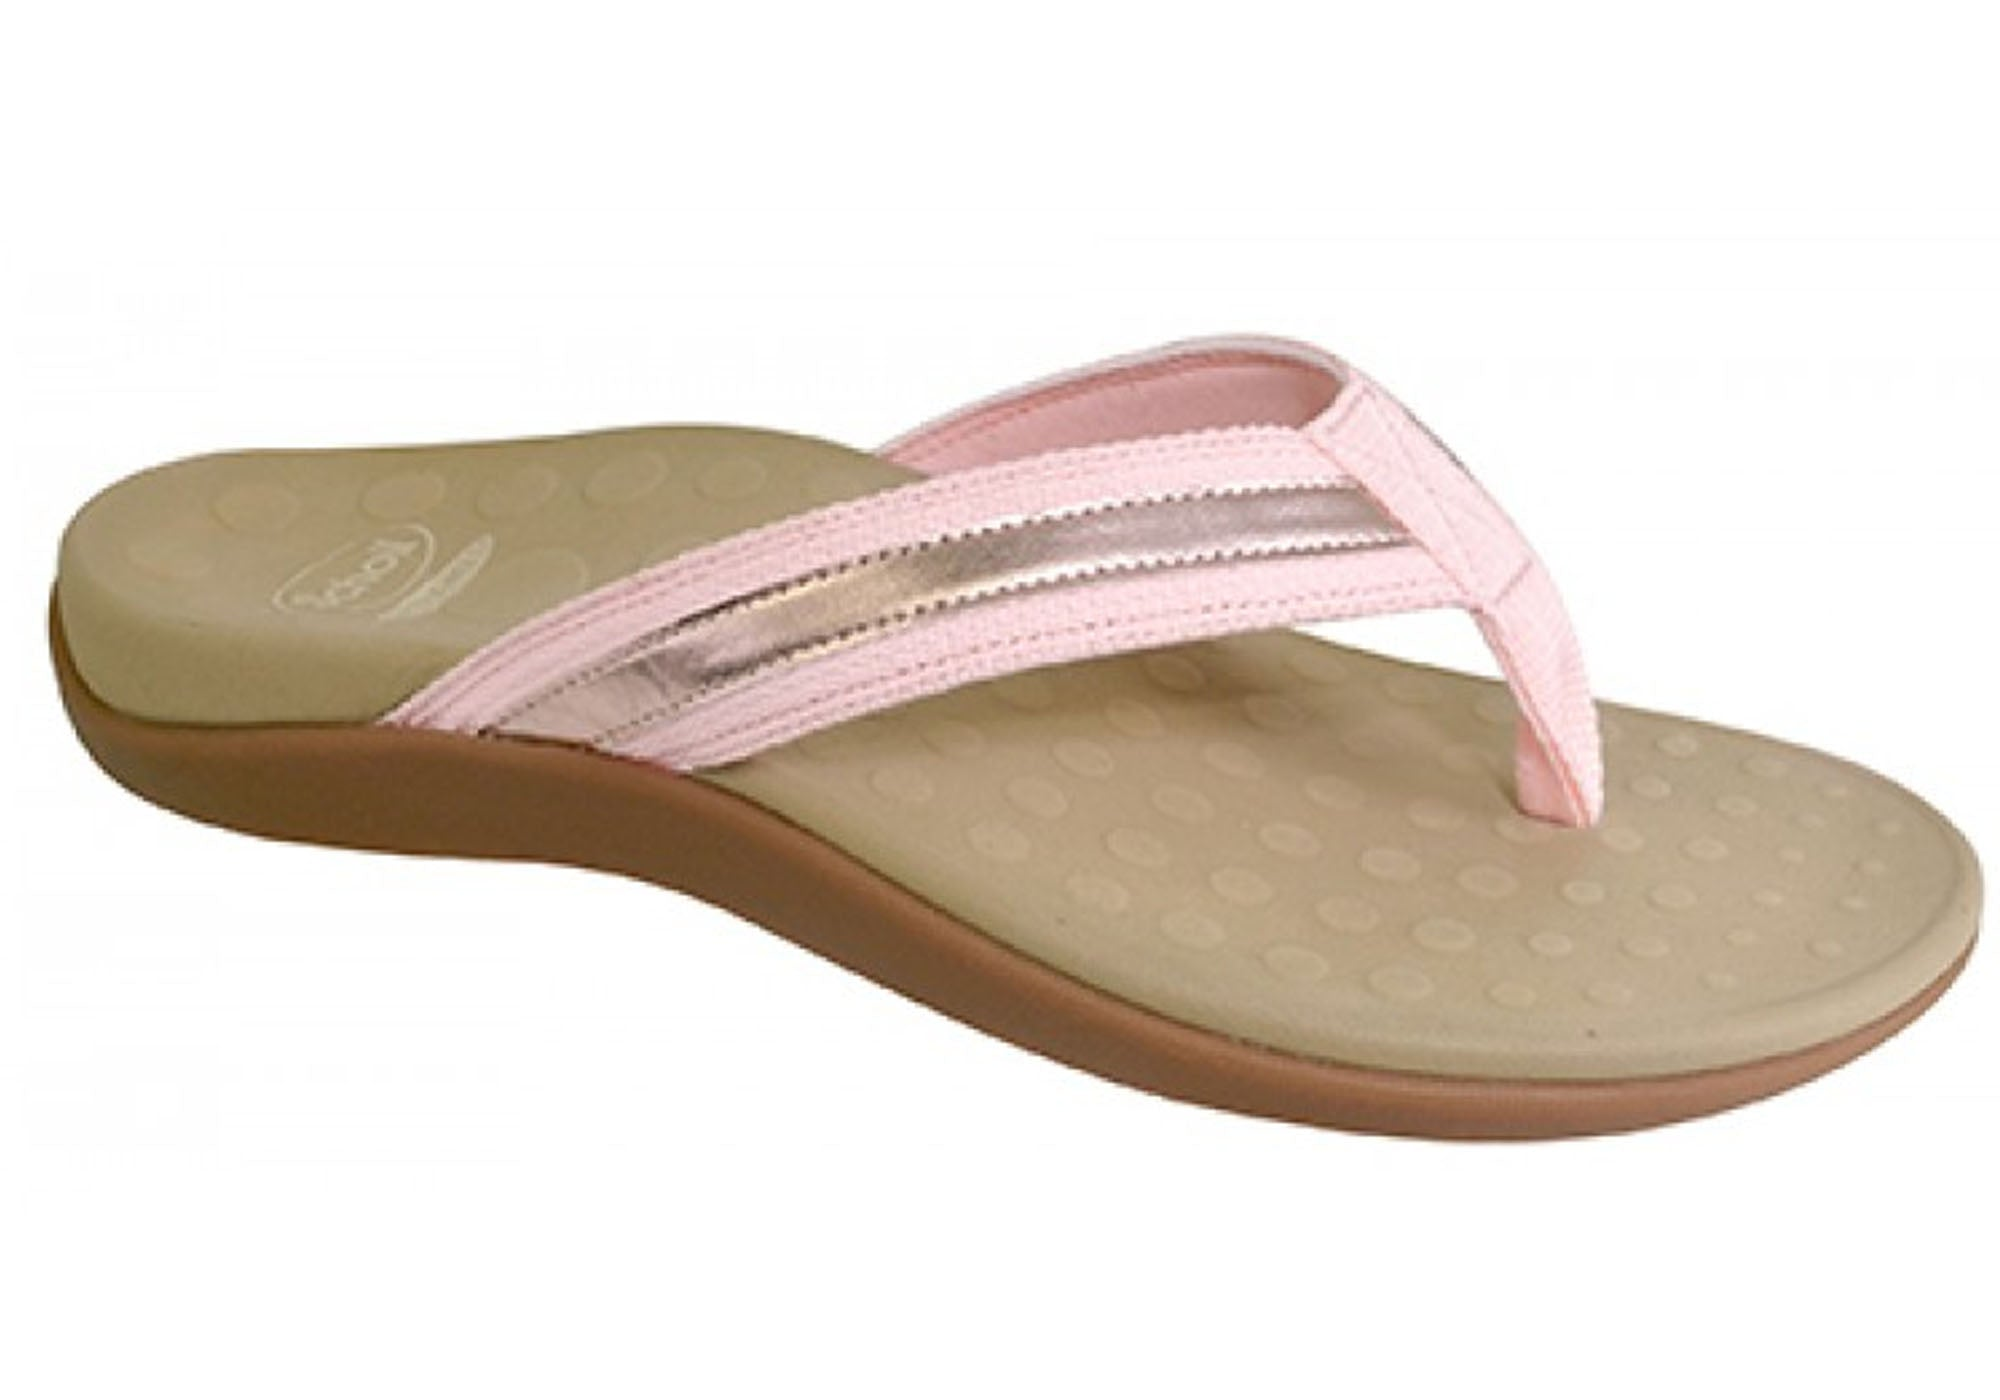 198b1750b35c Details about Brand New Scholl Orthaheel Tide Ii Womens Supportive Orthotic  Flip Flop Sandals